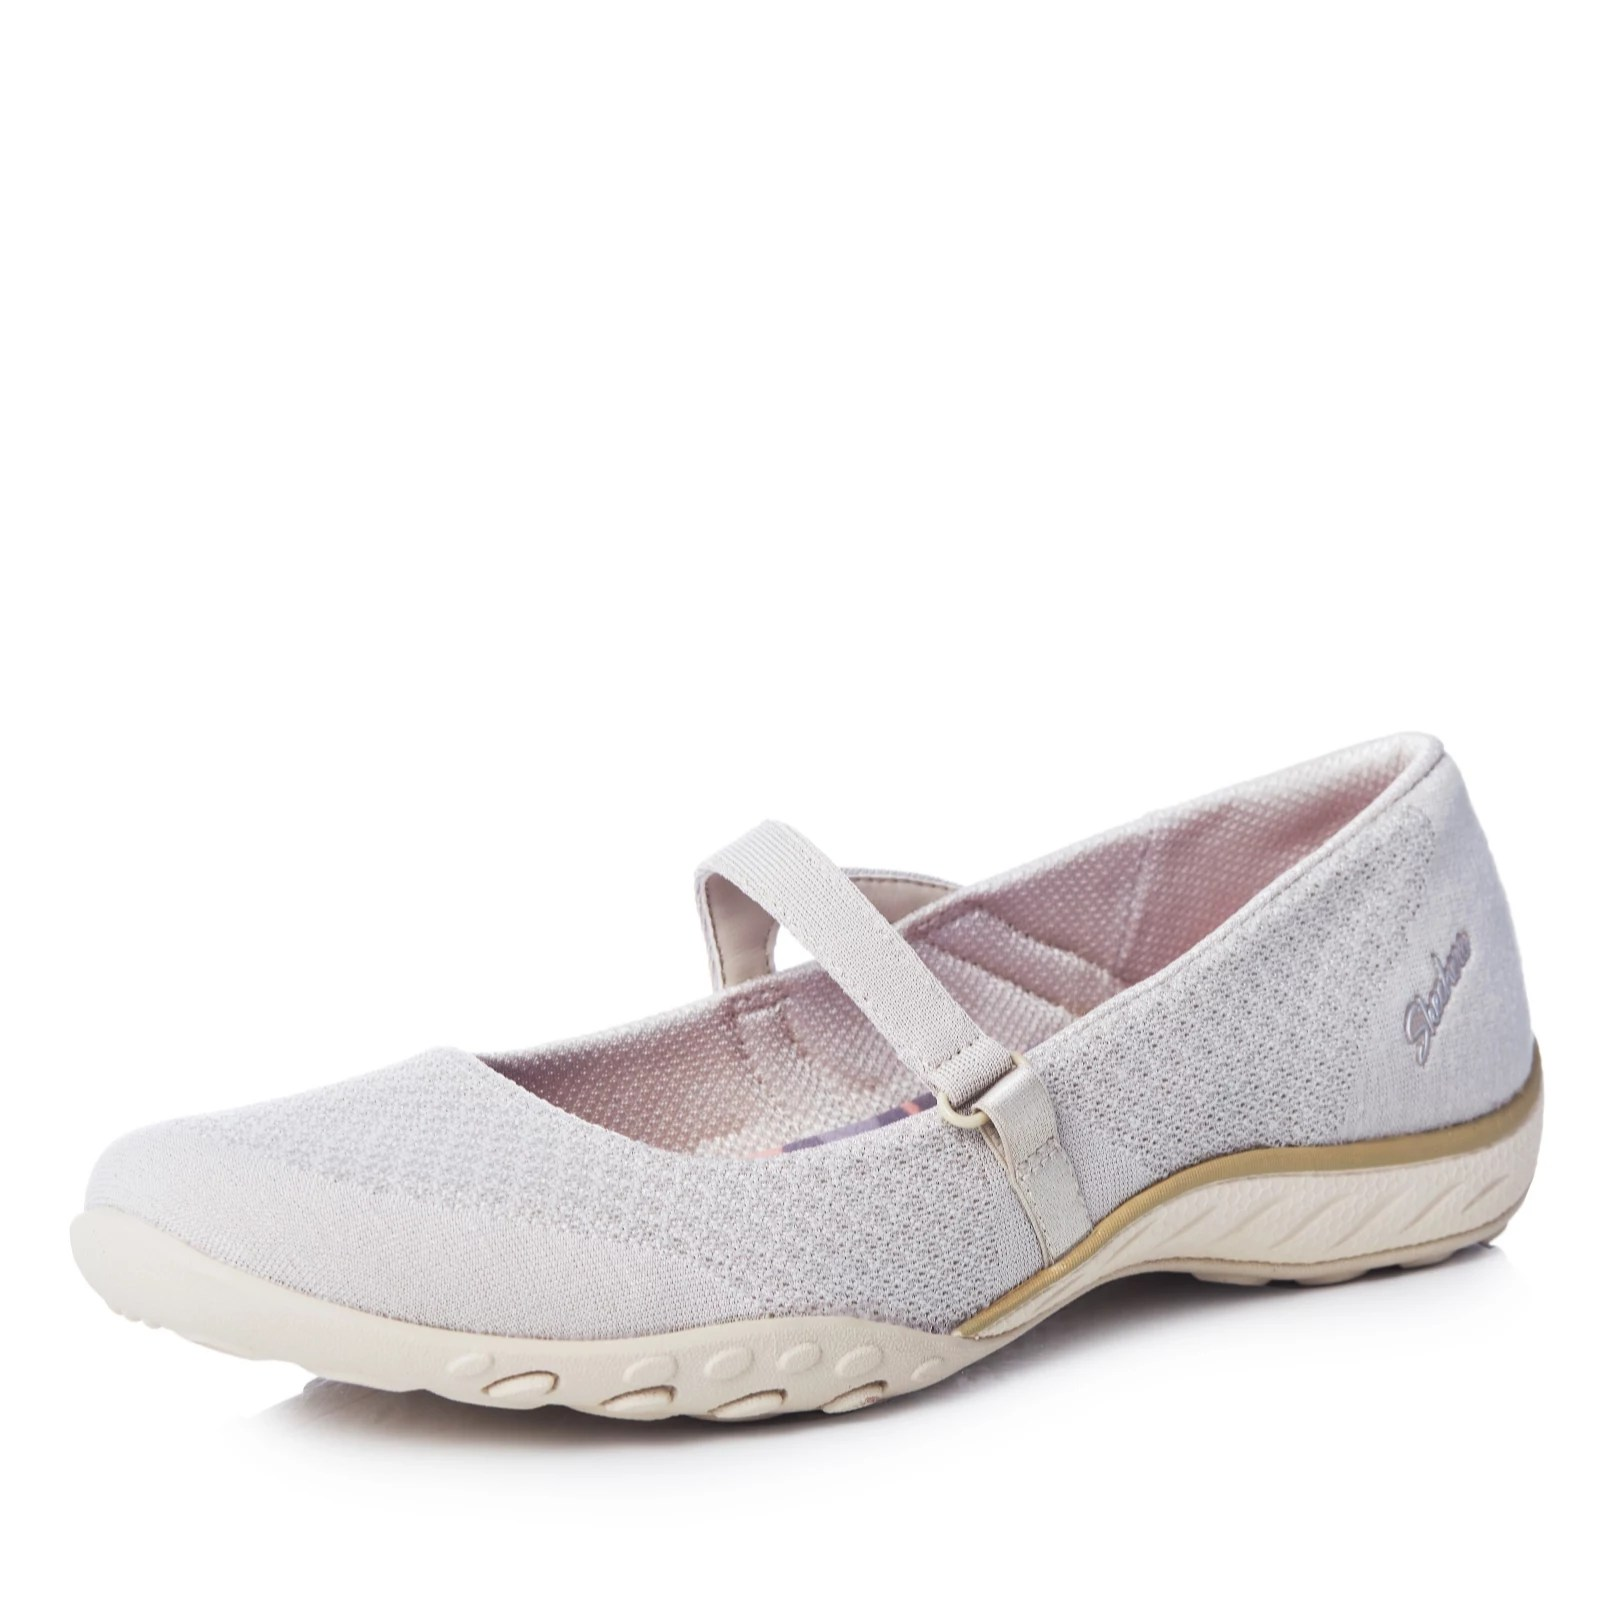 Outlet Skechers Breathe Easy Love Too Soft Knit Ballet Stap Qvc Uk